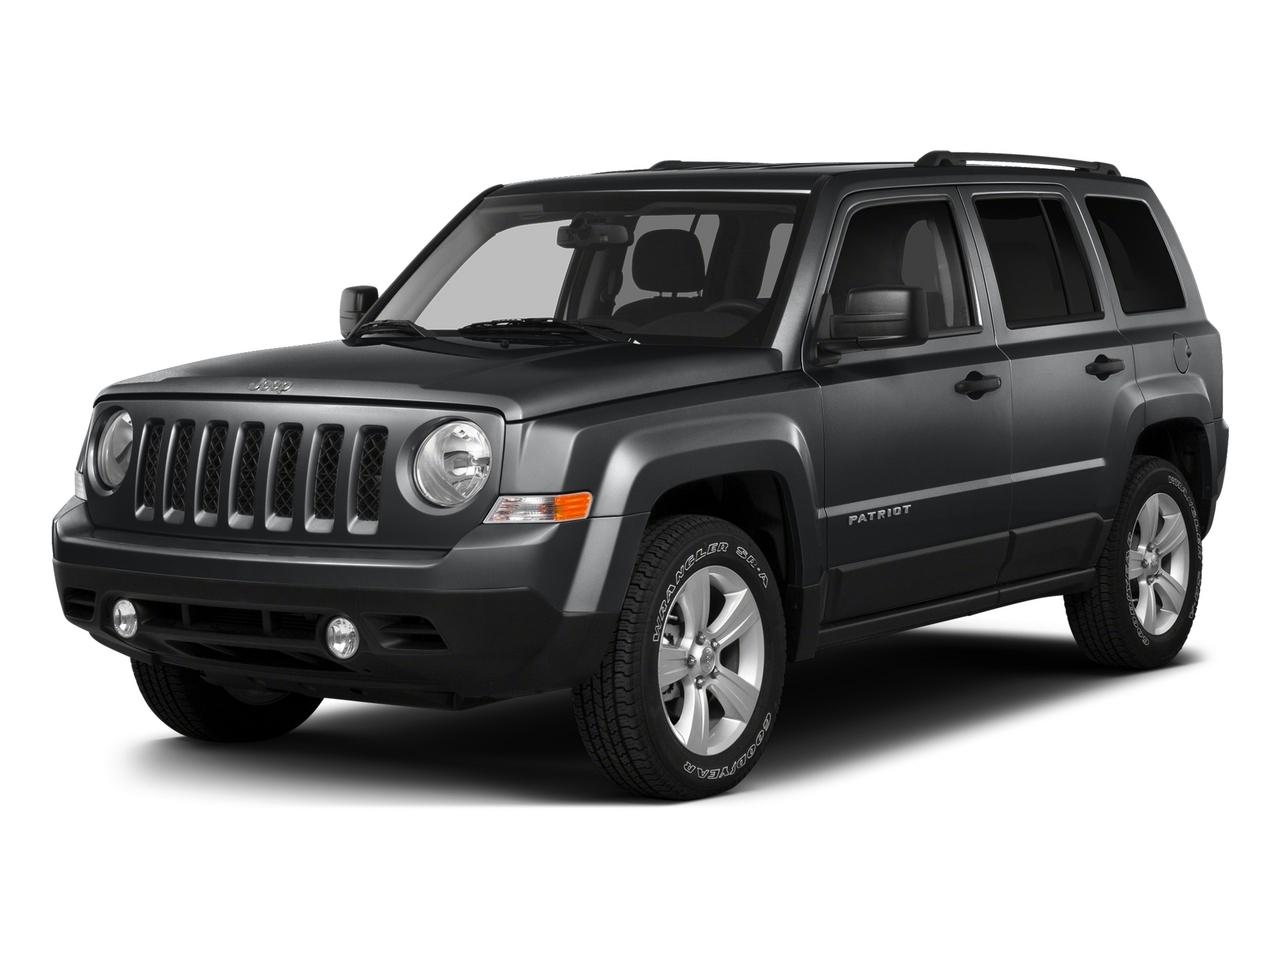 2015 Jeep Patriot Vehicle Photo in Akron, OH 44320